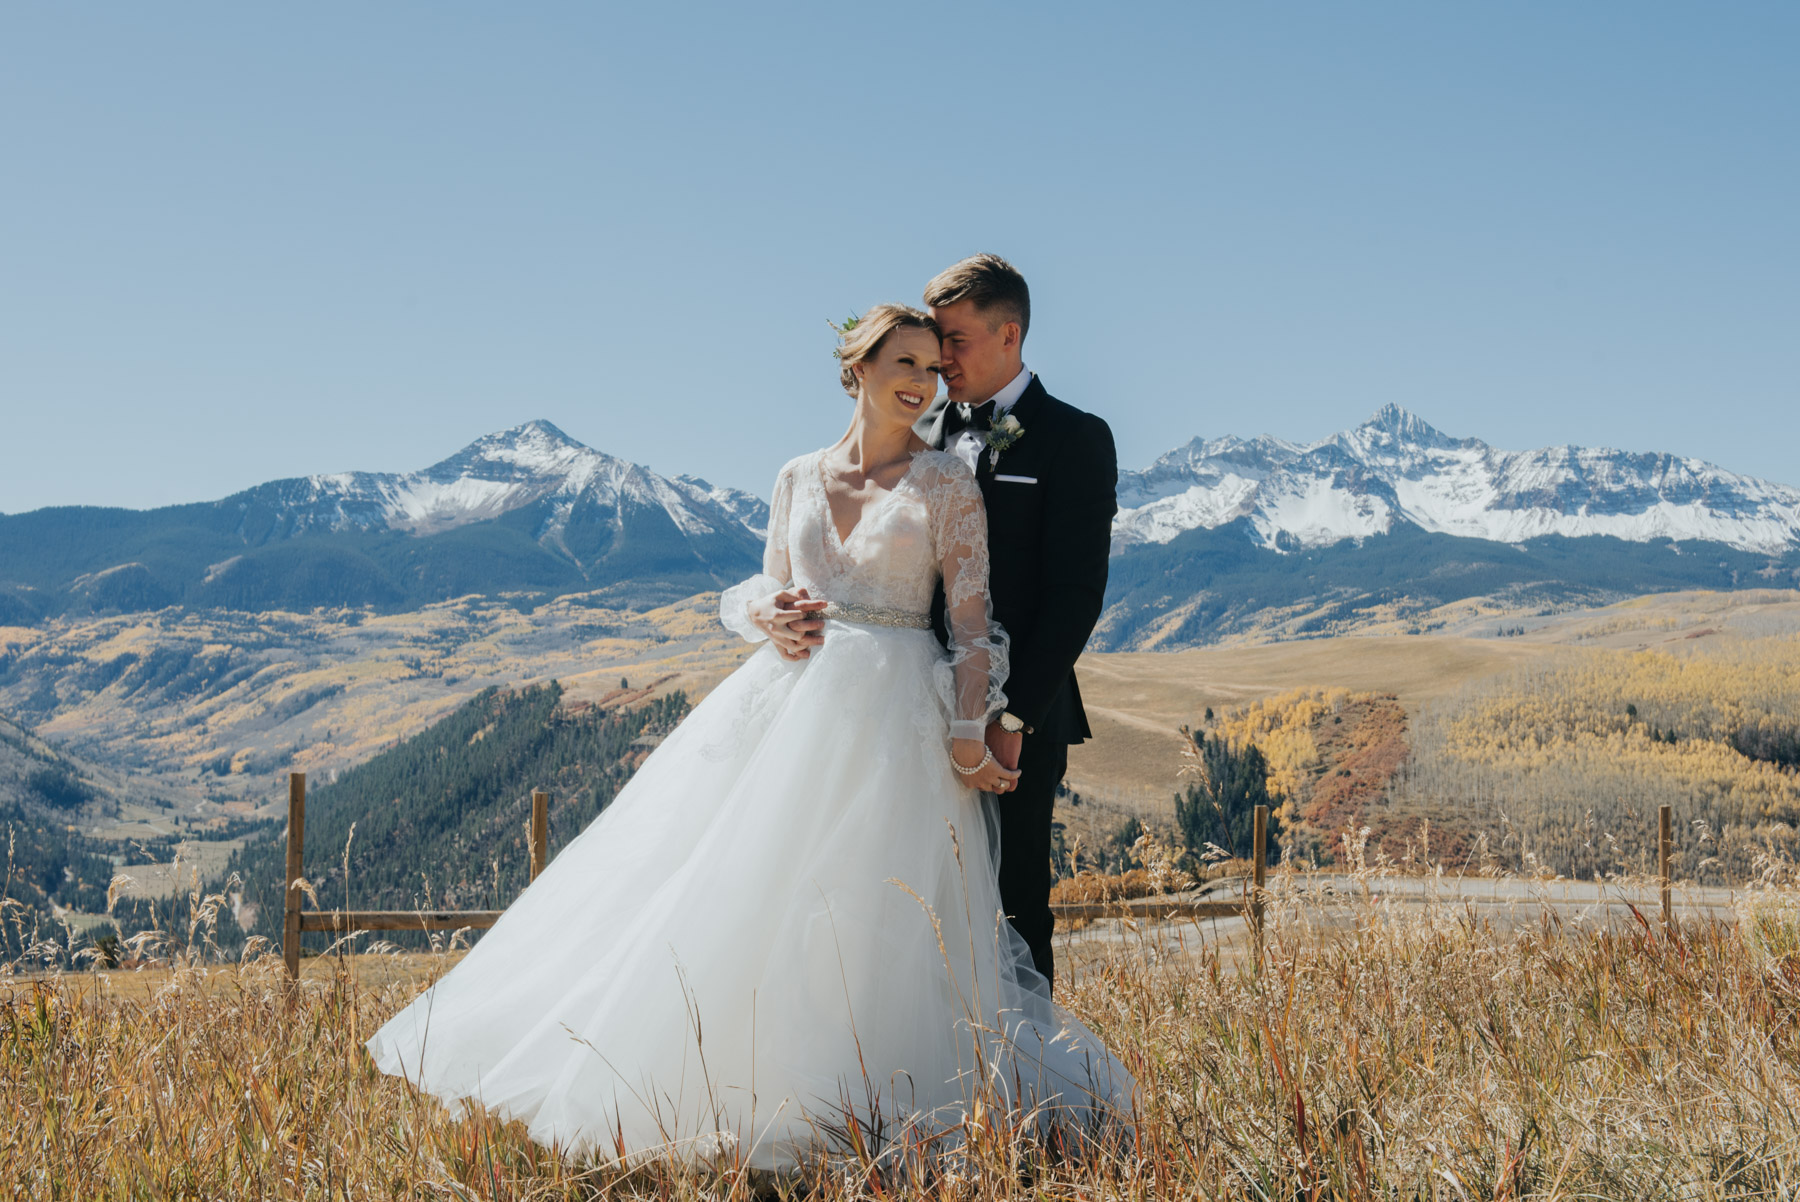 Elyse and Stefan before their amazing Telluride Destination Wedding. They decided to do their first look at the Telluride Airport, and they had some amazing mountain vistas to accompany it.